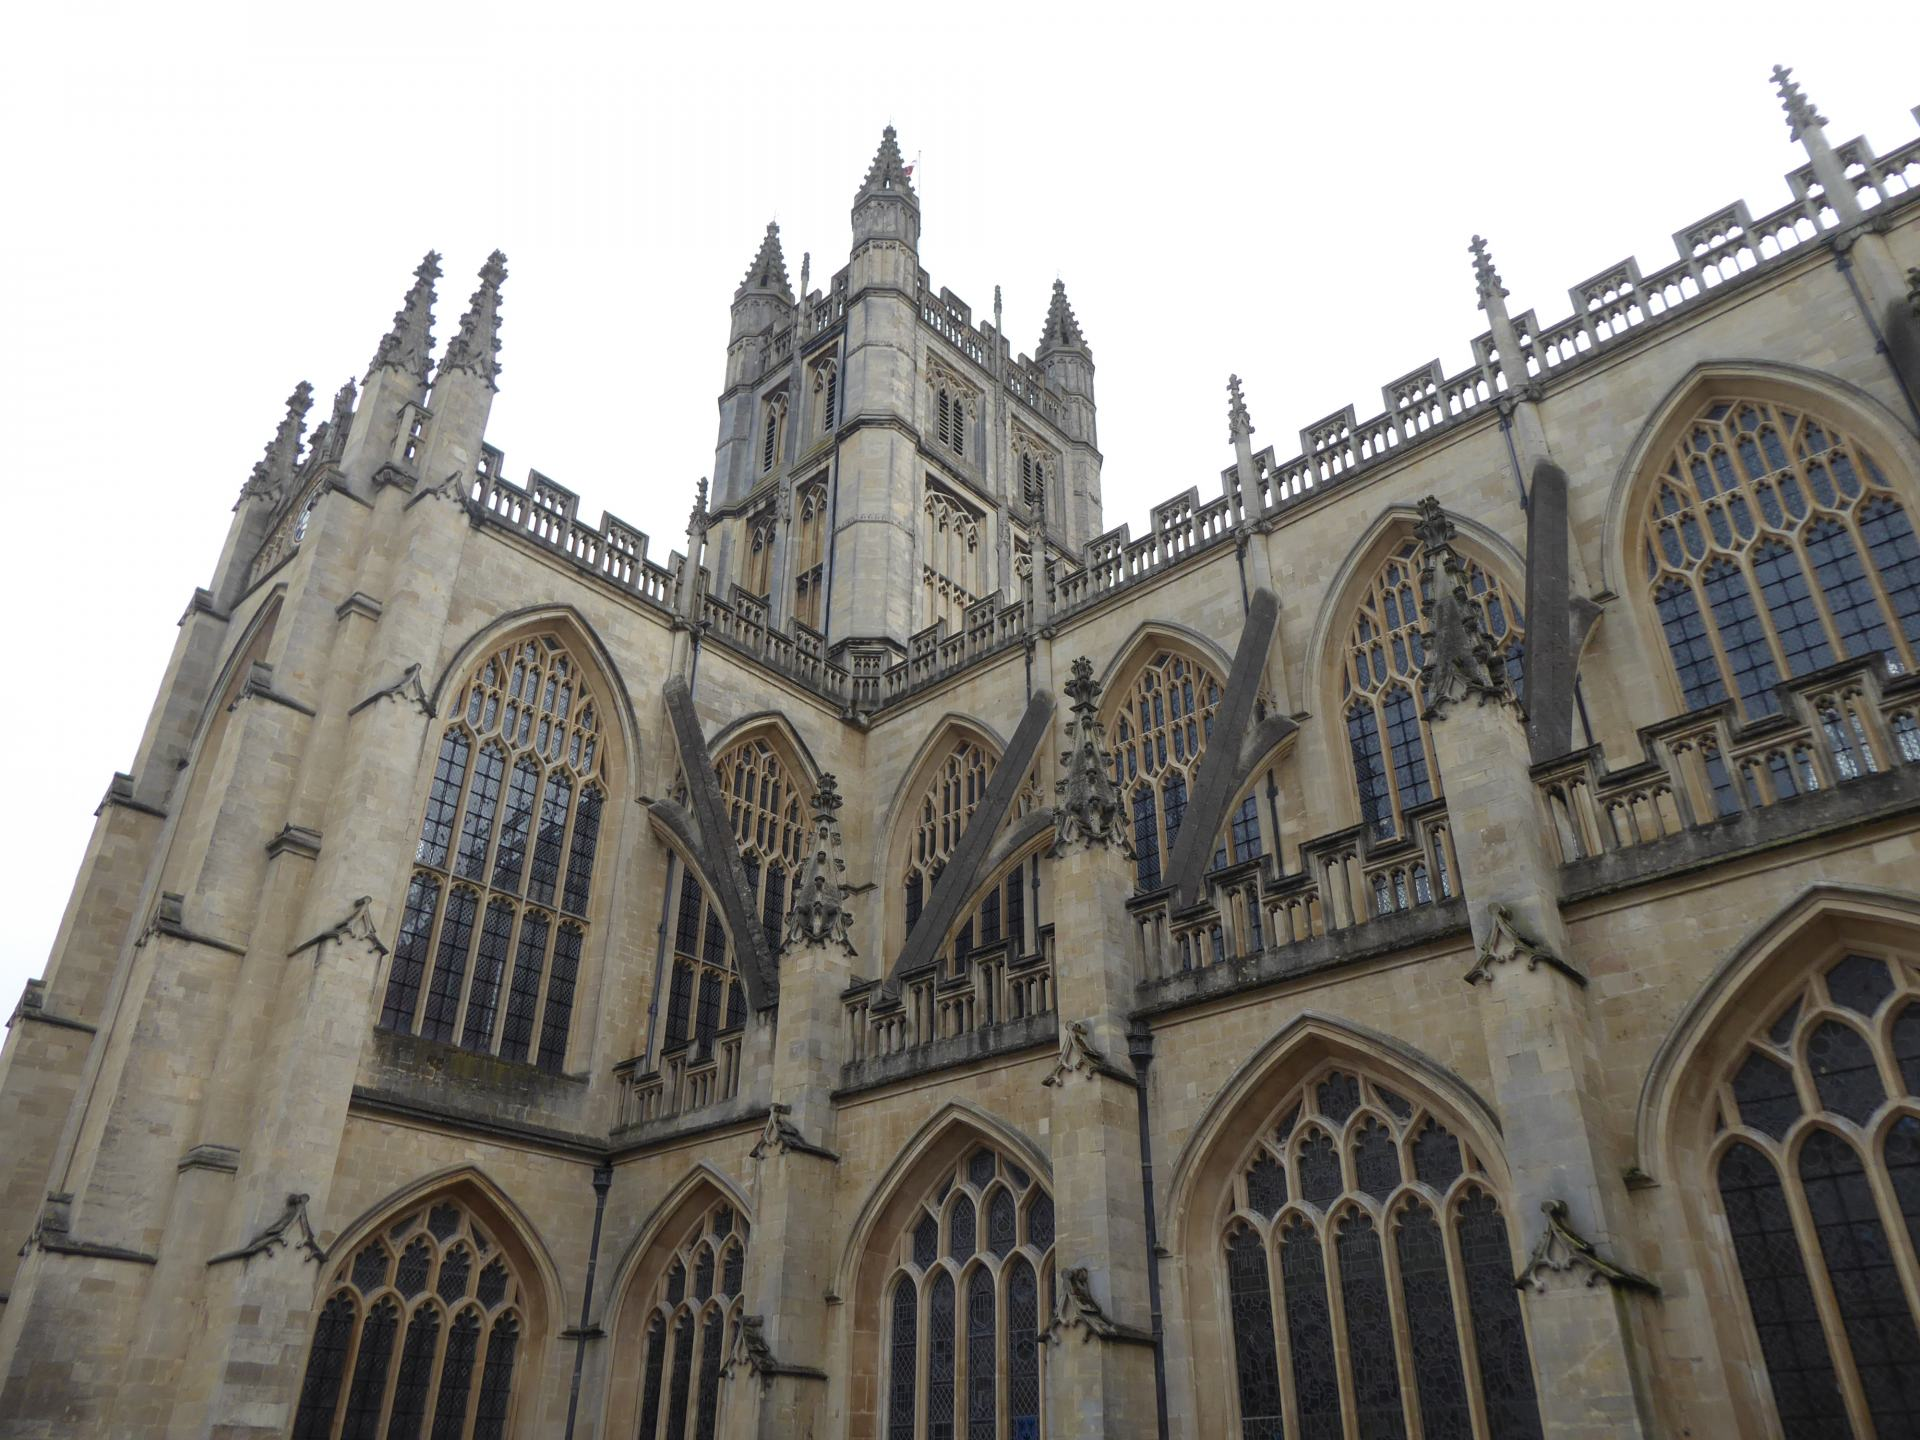 A view of the Bath Abbey from one if it's sides, showing it's tower and some of it's many windows.